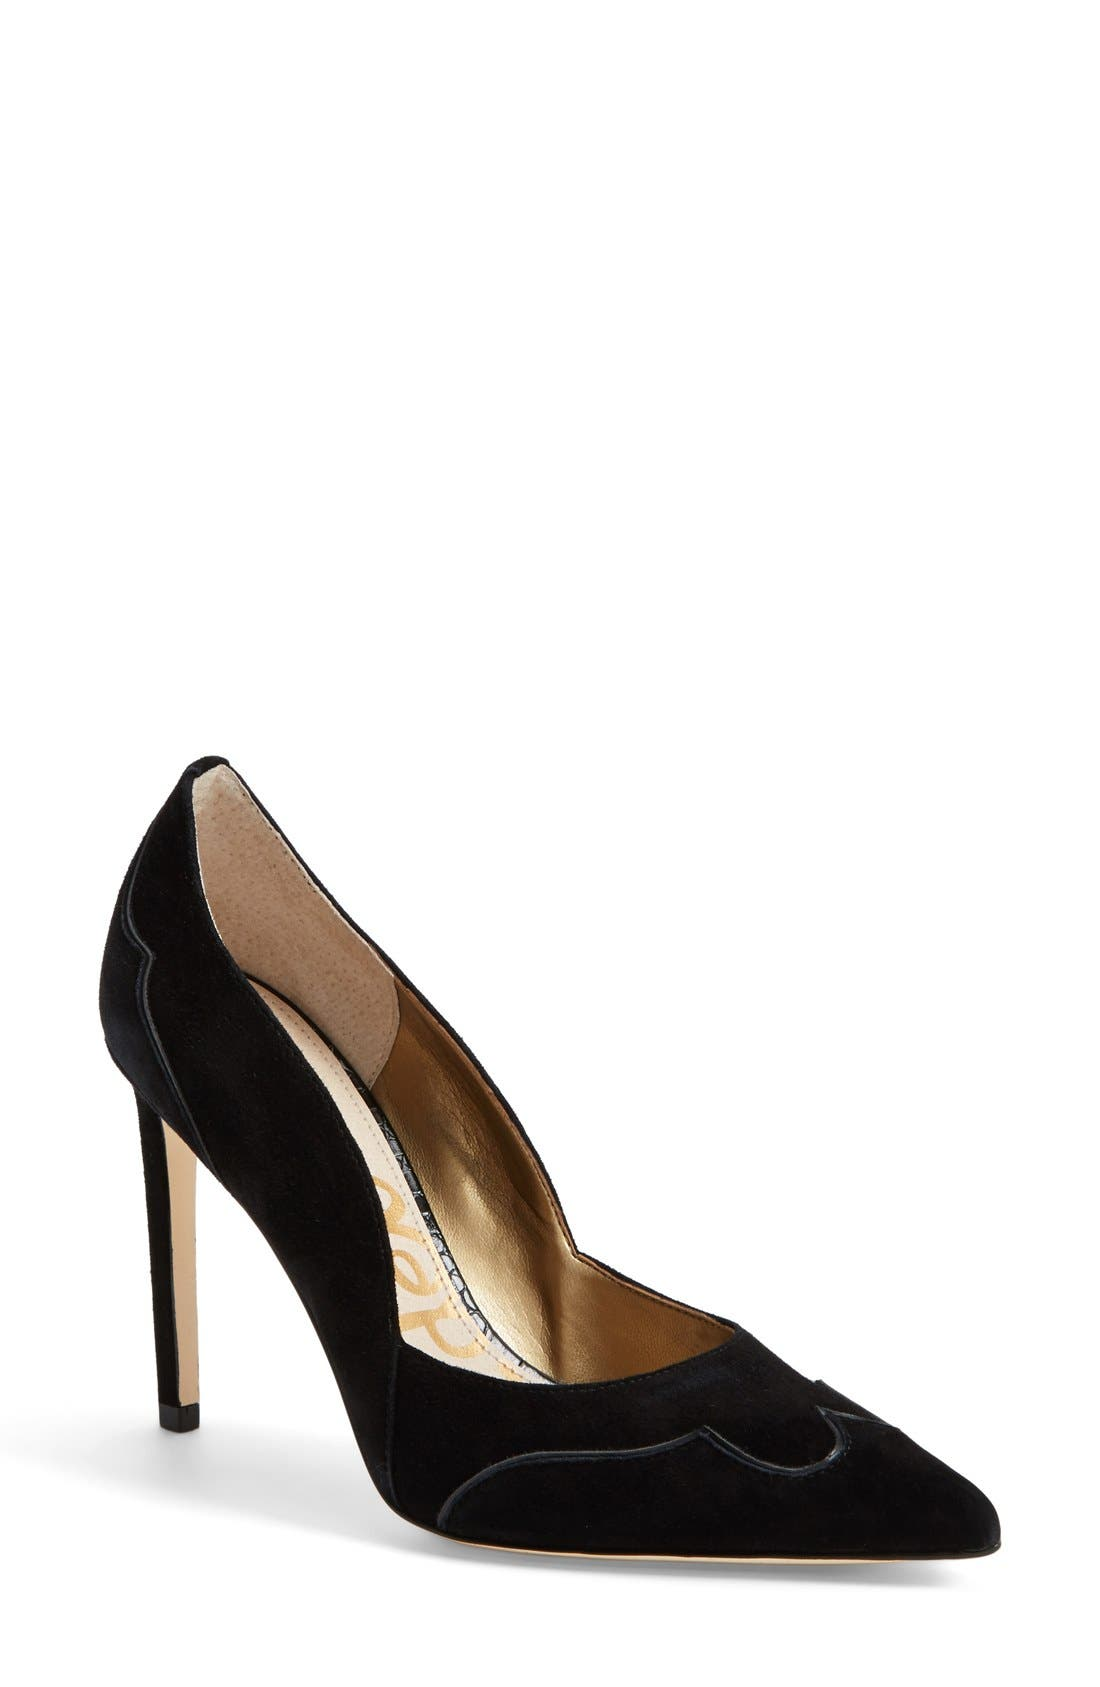 'Dixie' Suede Pointy Toe Pump,                             Main thumbnail 1, color,                             002